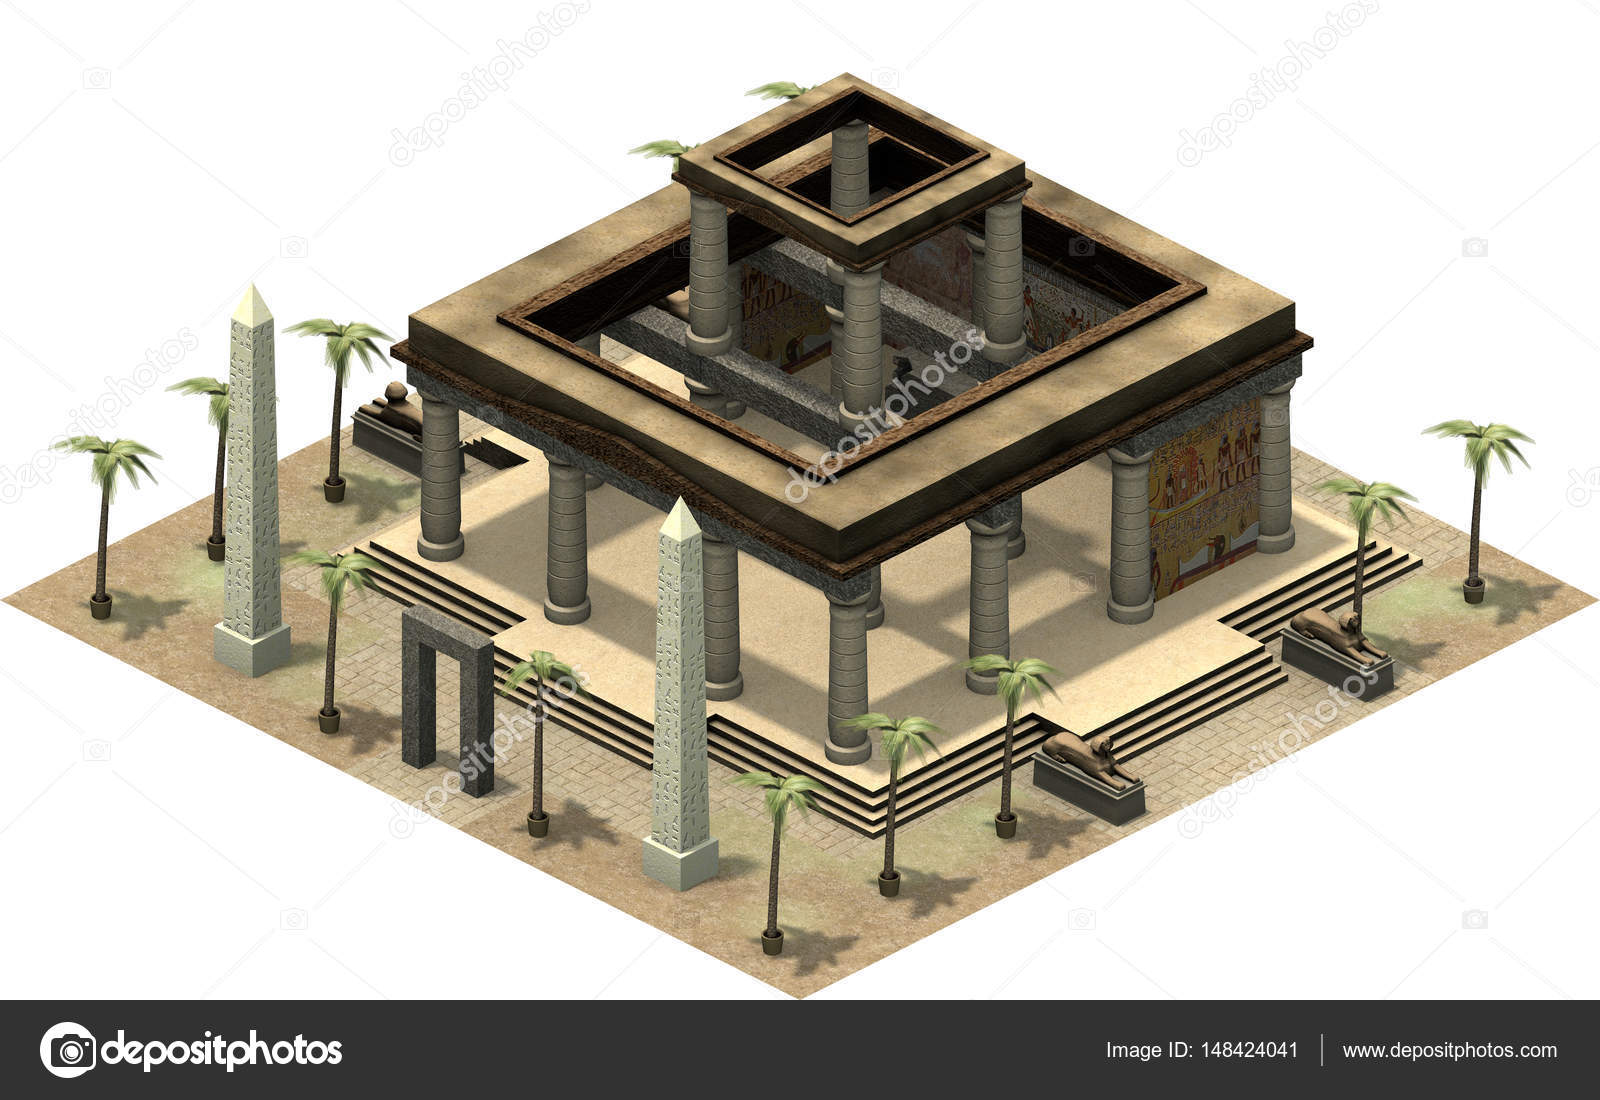 Isometric platform of ancient egypt stock photo fredmantel 3d rendering of isometric platform of ancient egypt illustration of old architecture temple with pillars and palm trees in dessert ccuart Choice Image